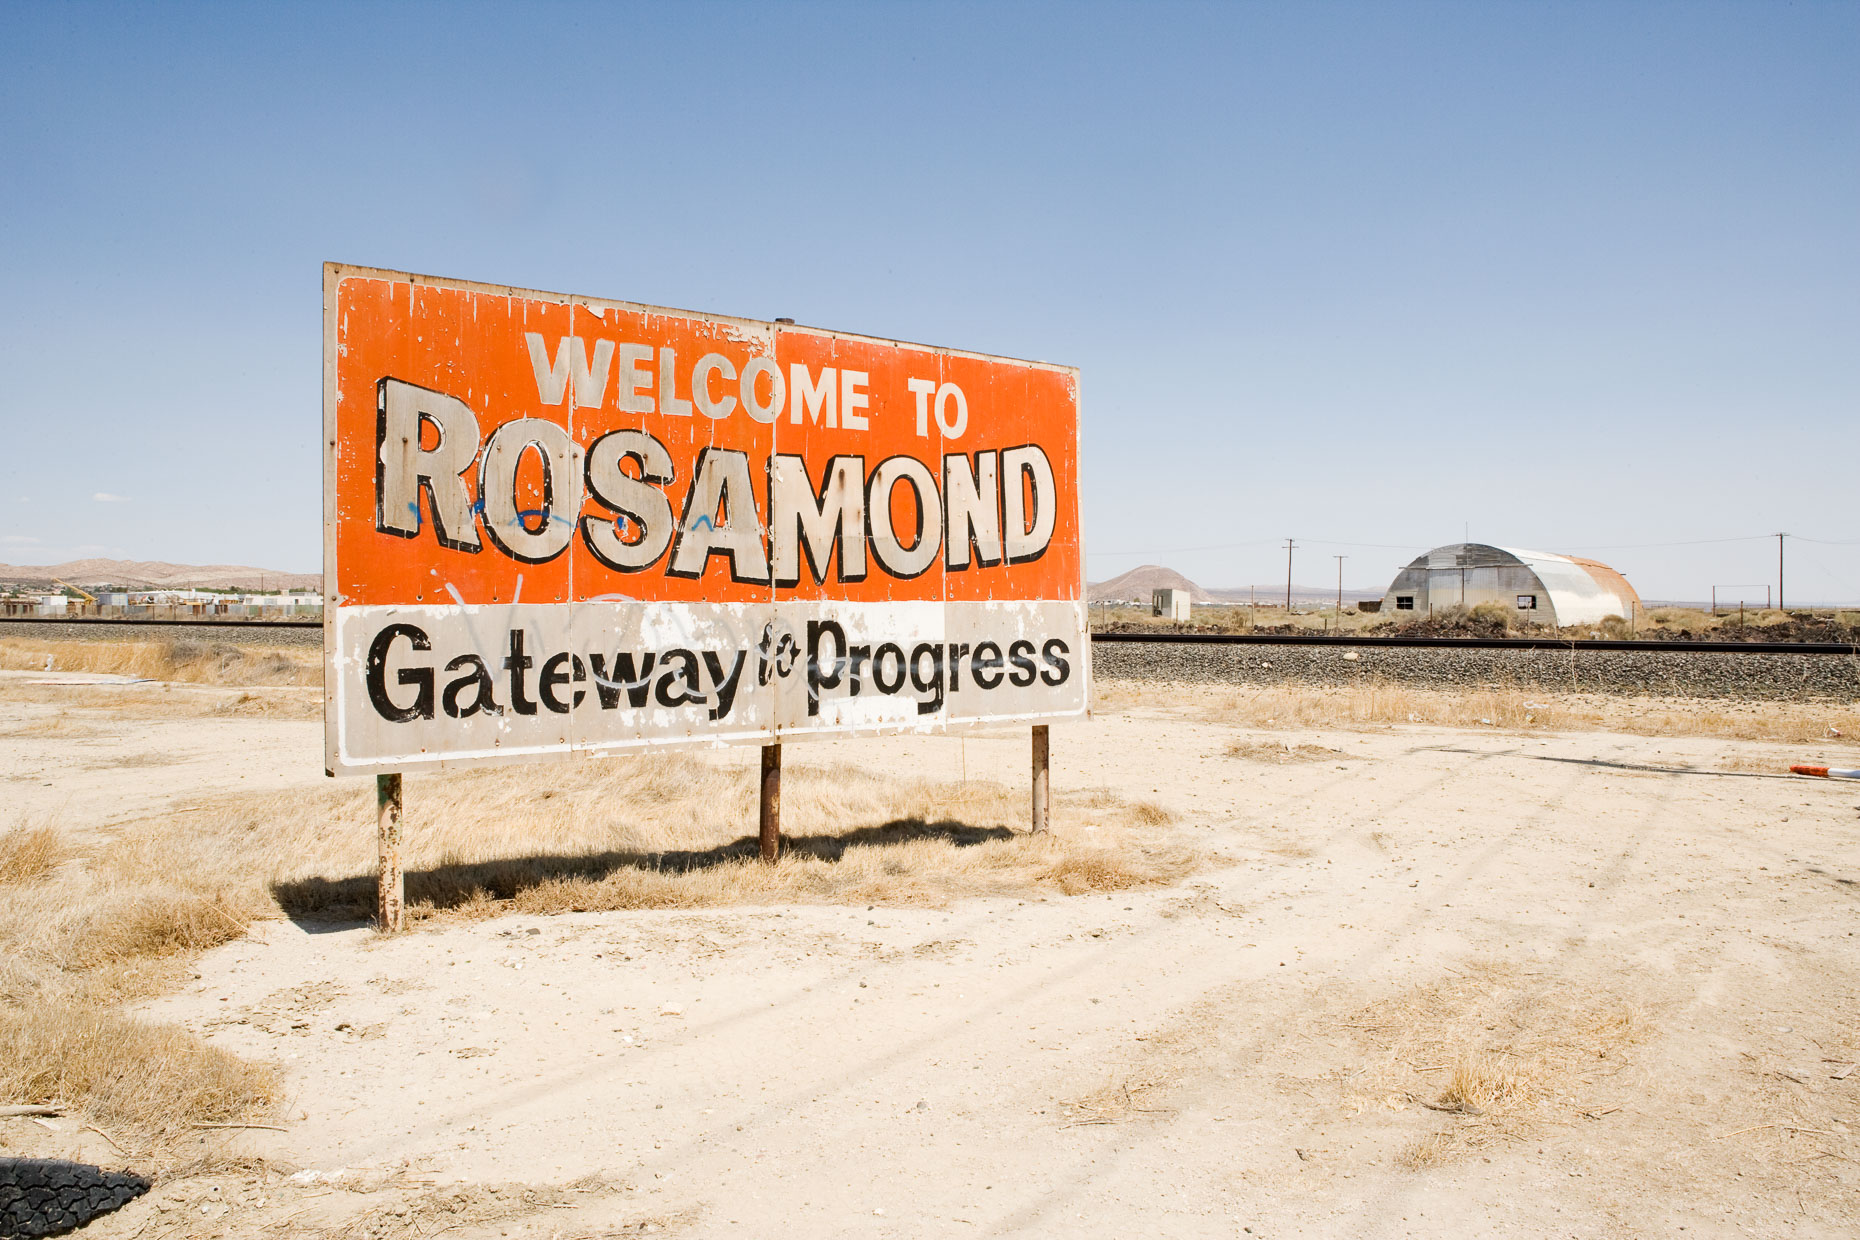 Weathered WELCOME TO ROSAMOND GATEWAY TO PROGRESS billboard on road in desert. Rosamond, California by David Zaitz